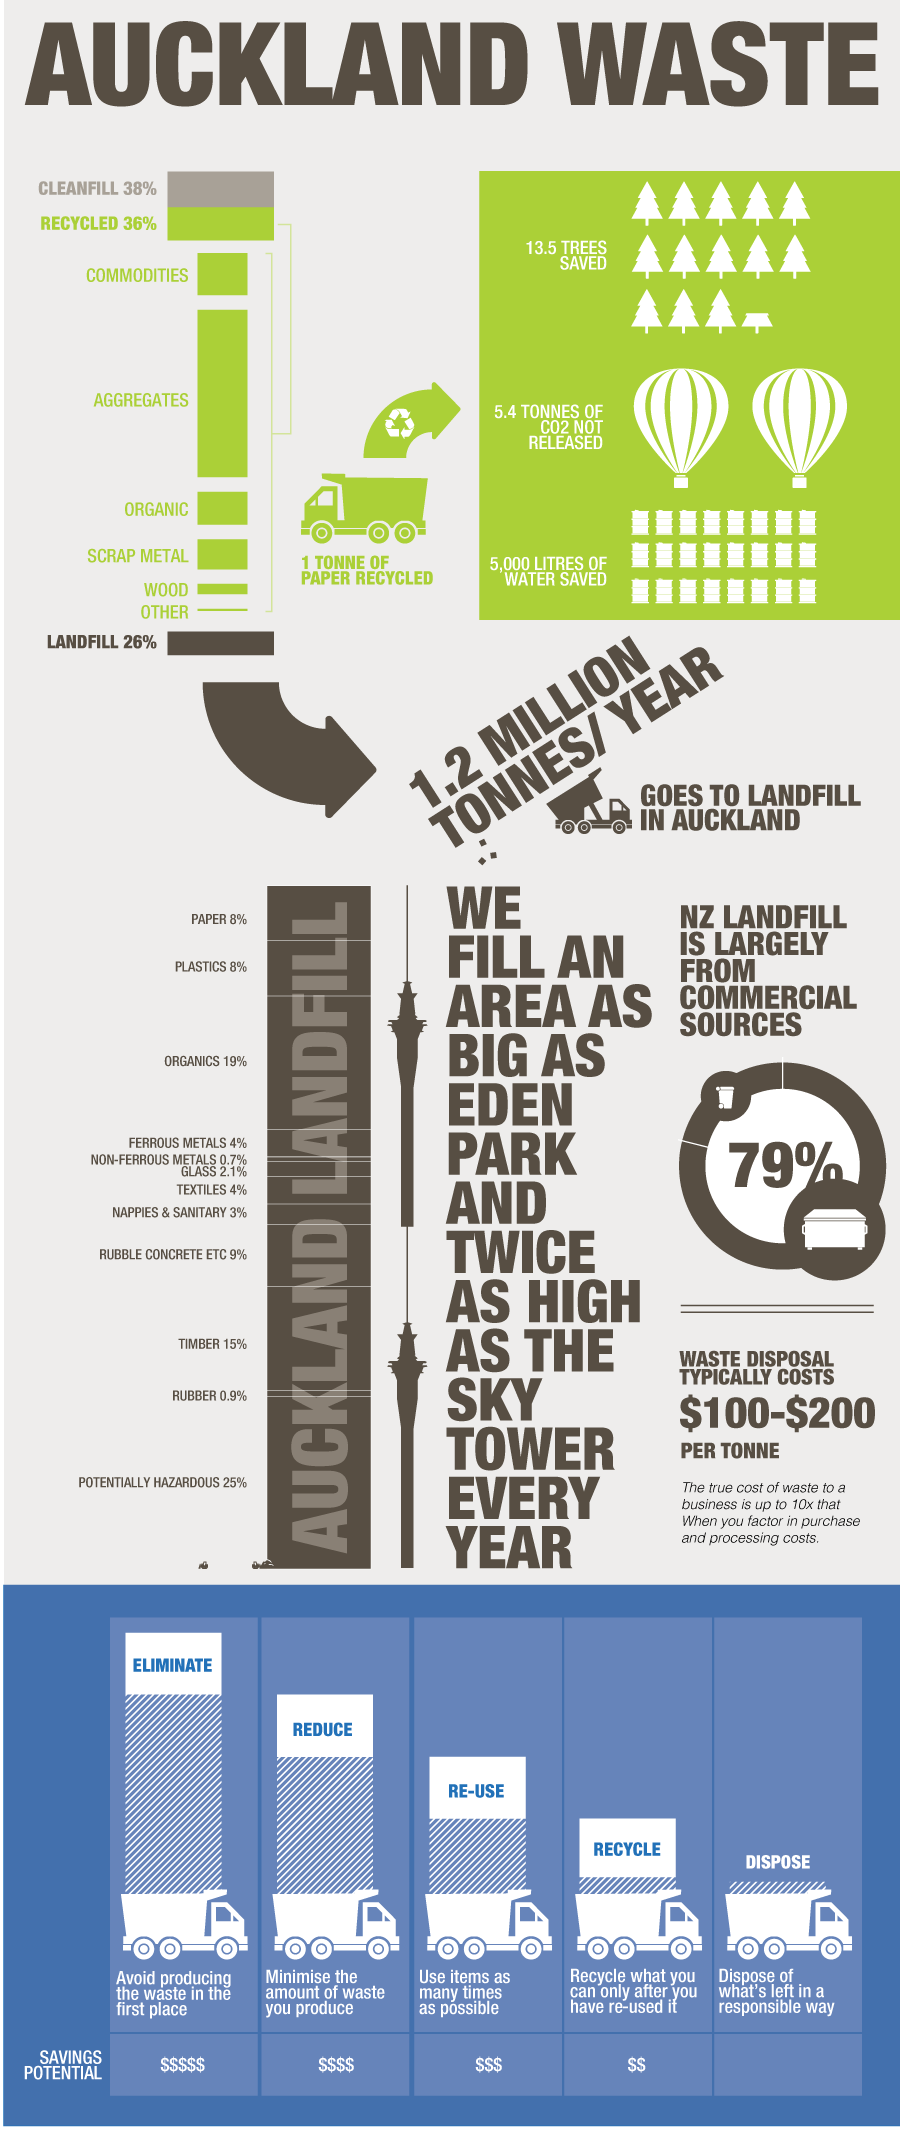 Aucklands Waste, landfill & recycling